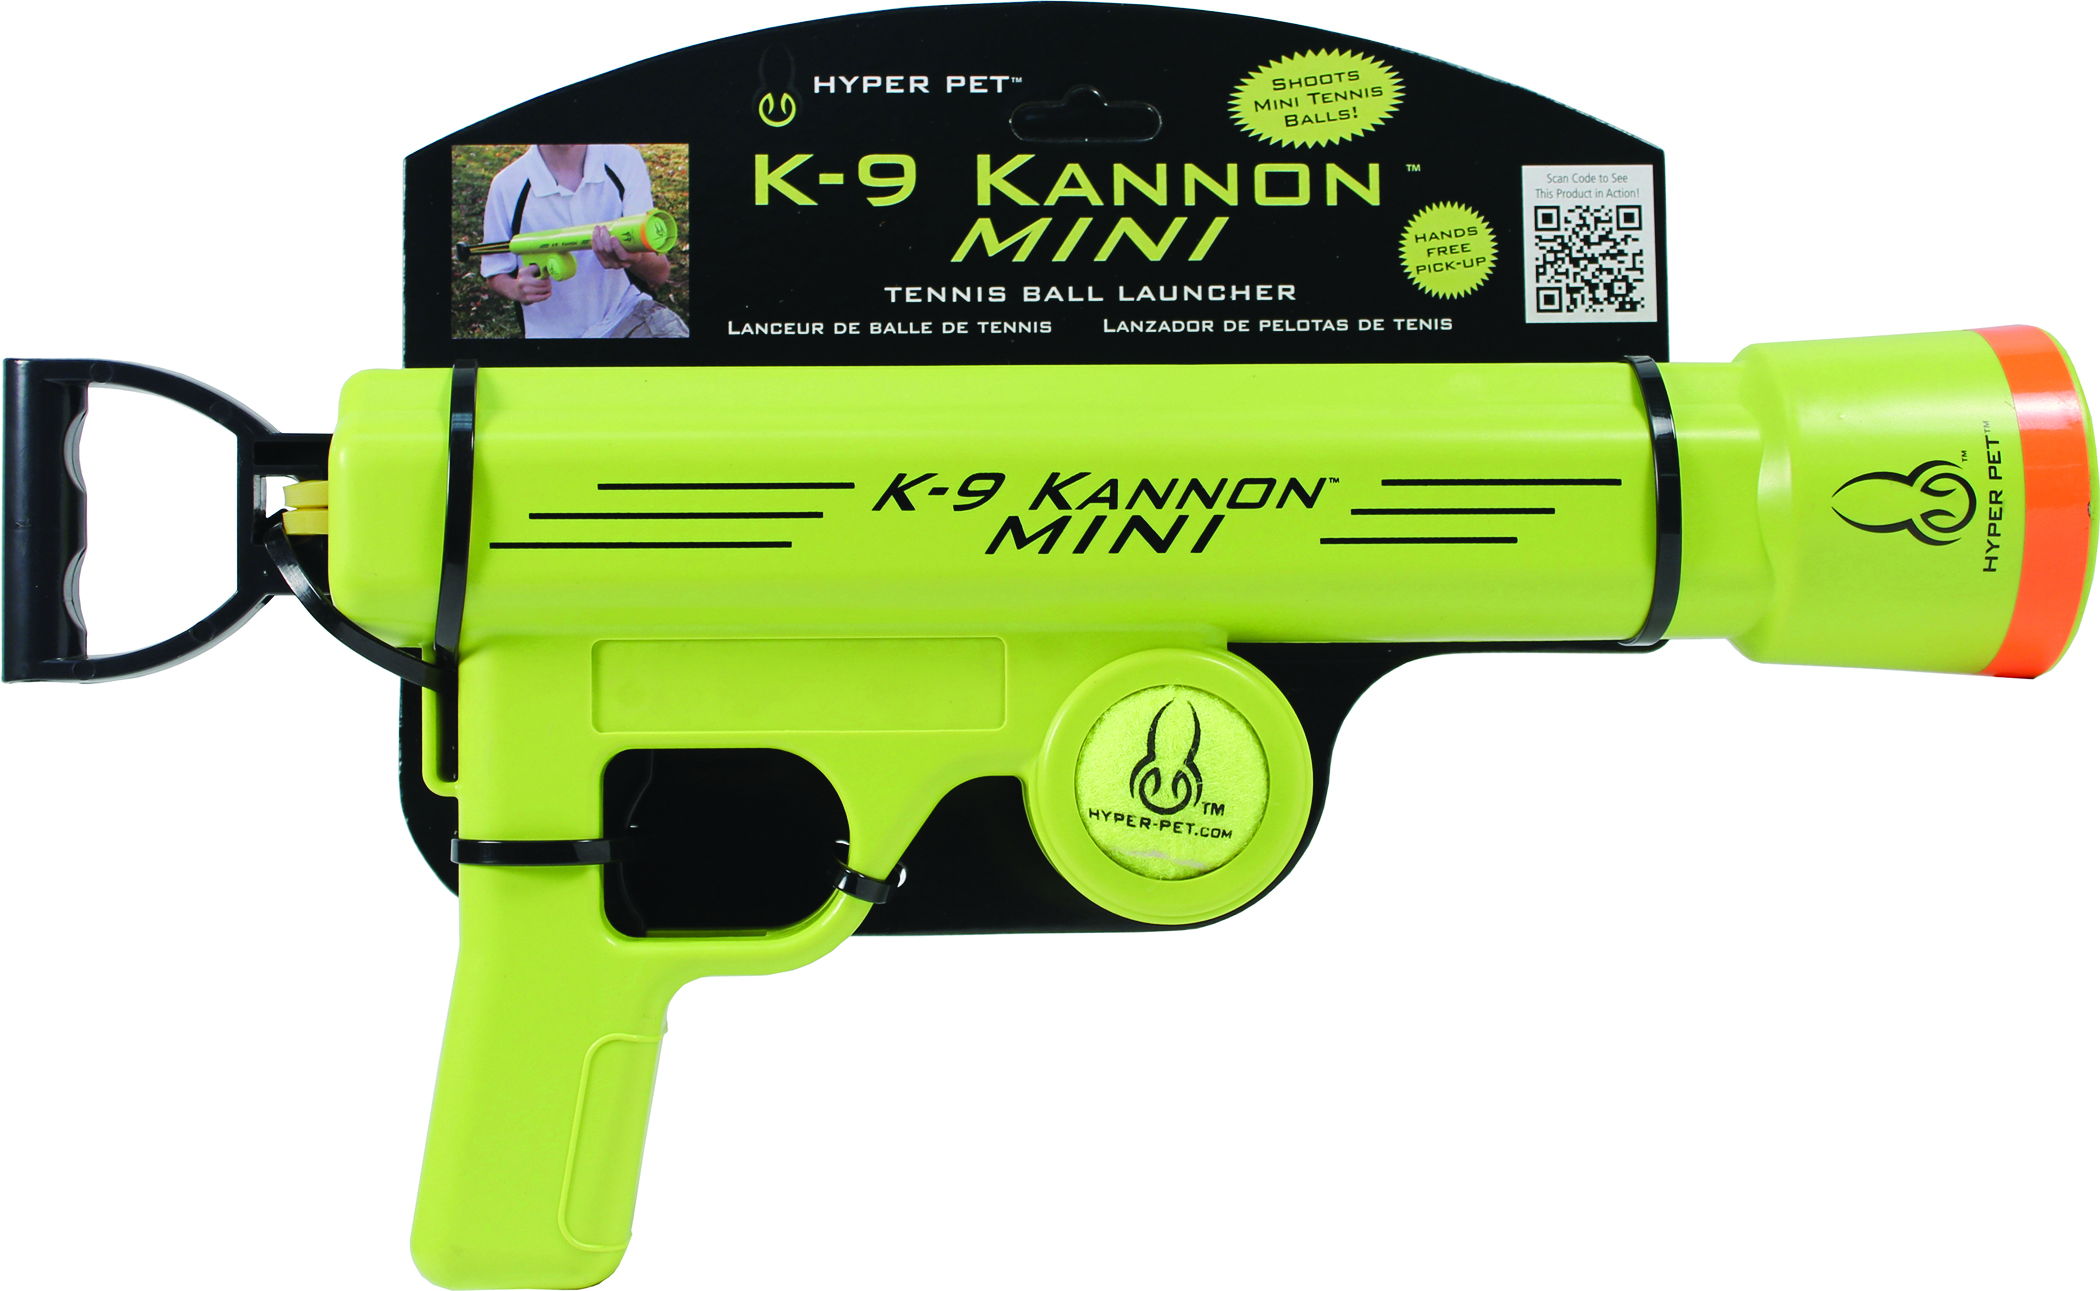 Hyper Pet K-9 Kannon Mini Tennis Ball Launcher